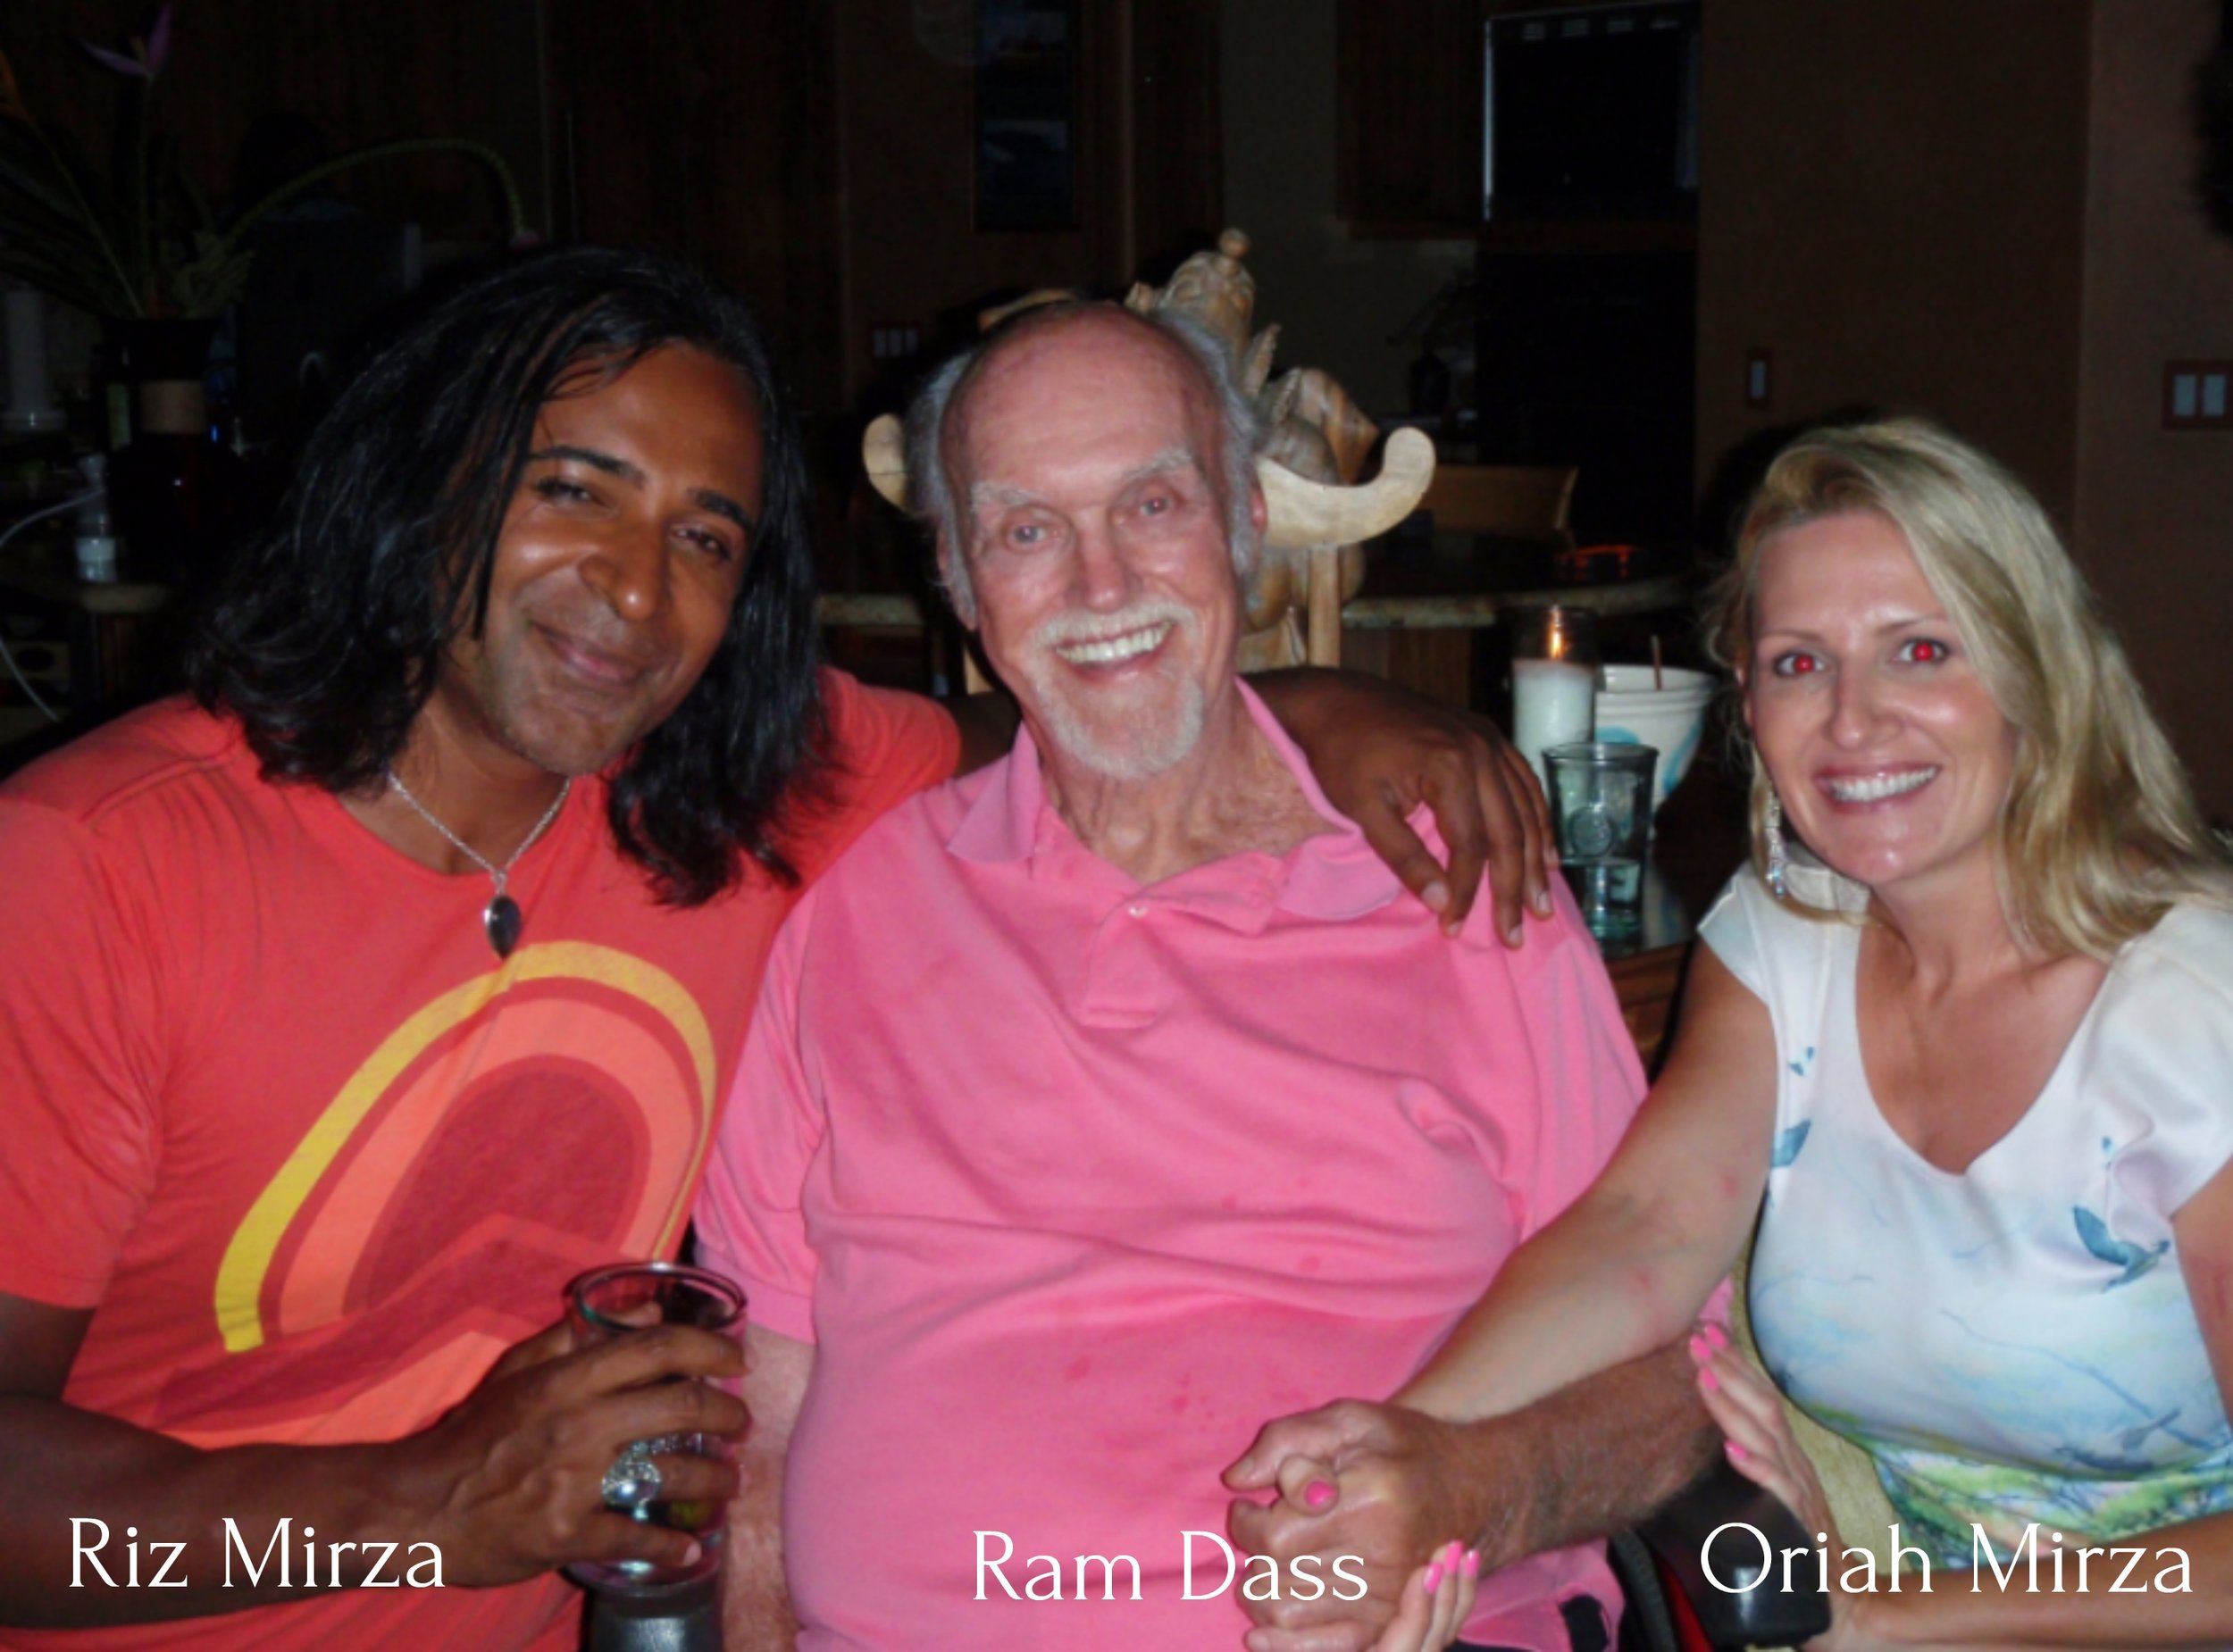 Channeling Emmanuel for Ram Dass in Hawaii. His former channel who has transitioned channeled used to Emmanuel for him. It was a special surprise for ram Dass.